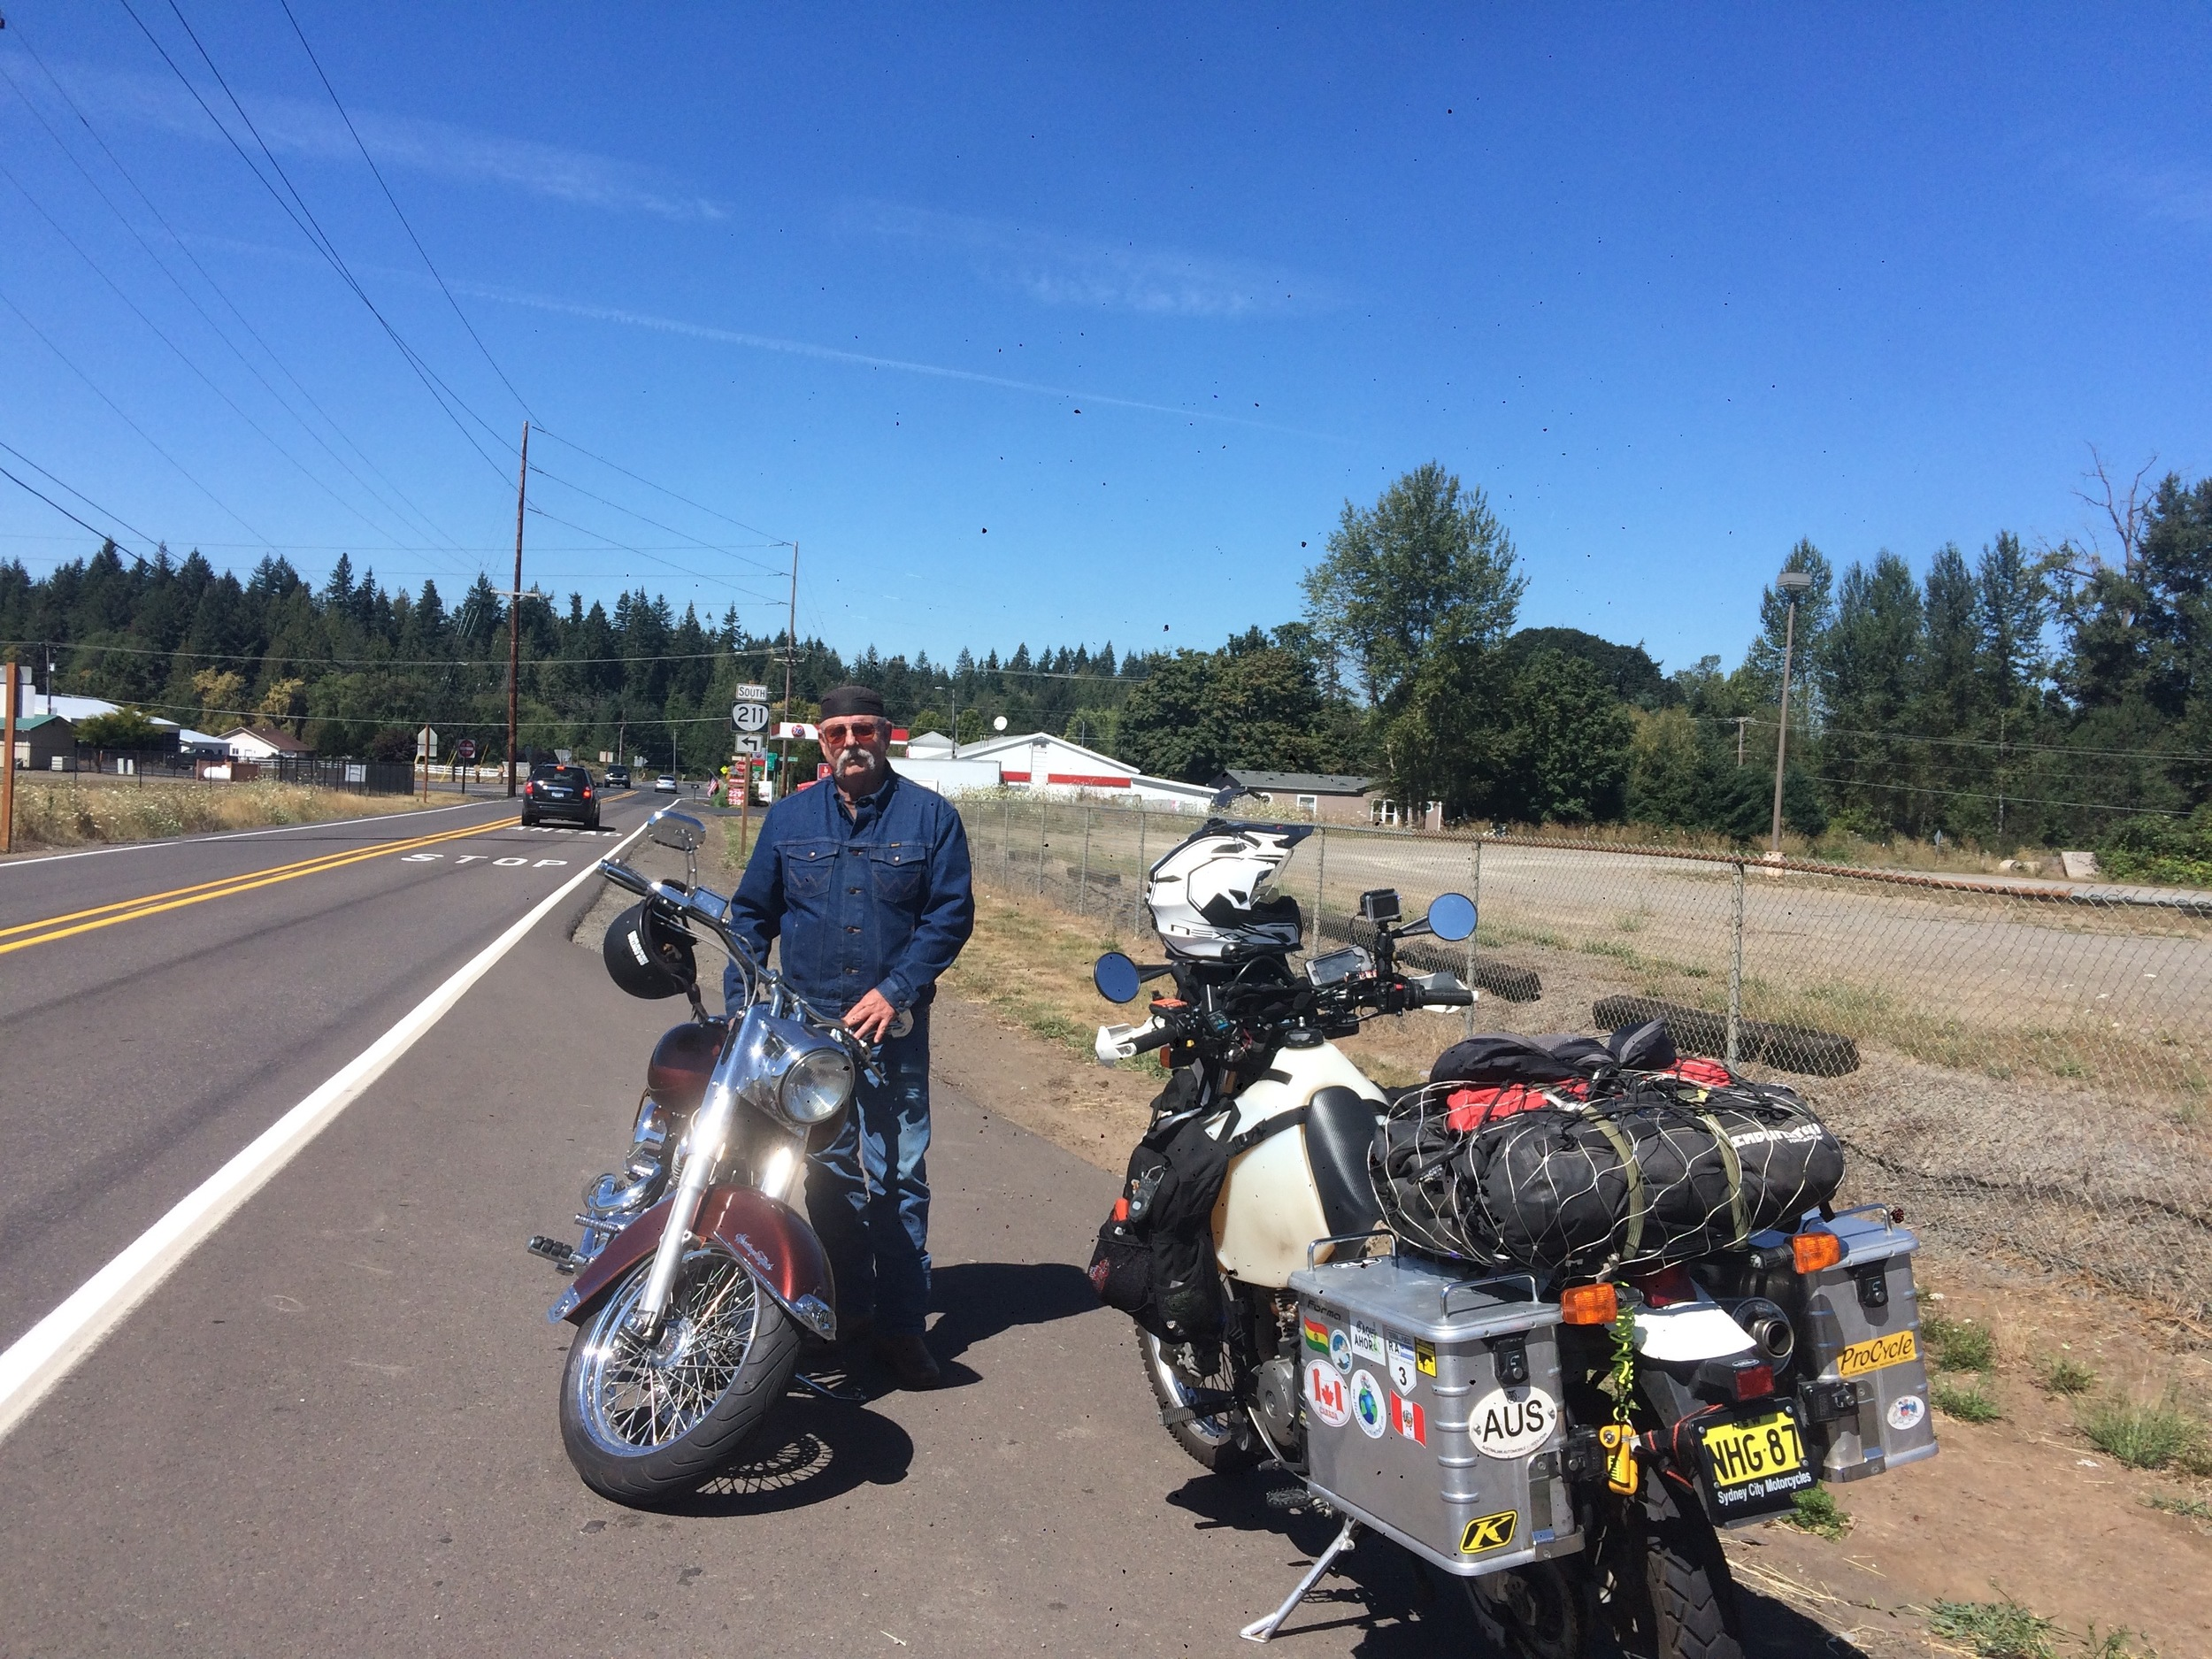 Here's Thad and his '91 Harley, another cool and interesting character we met on the road.